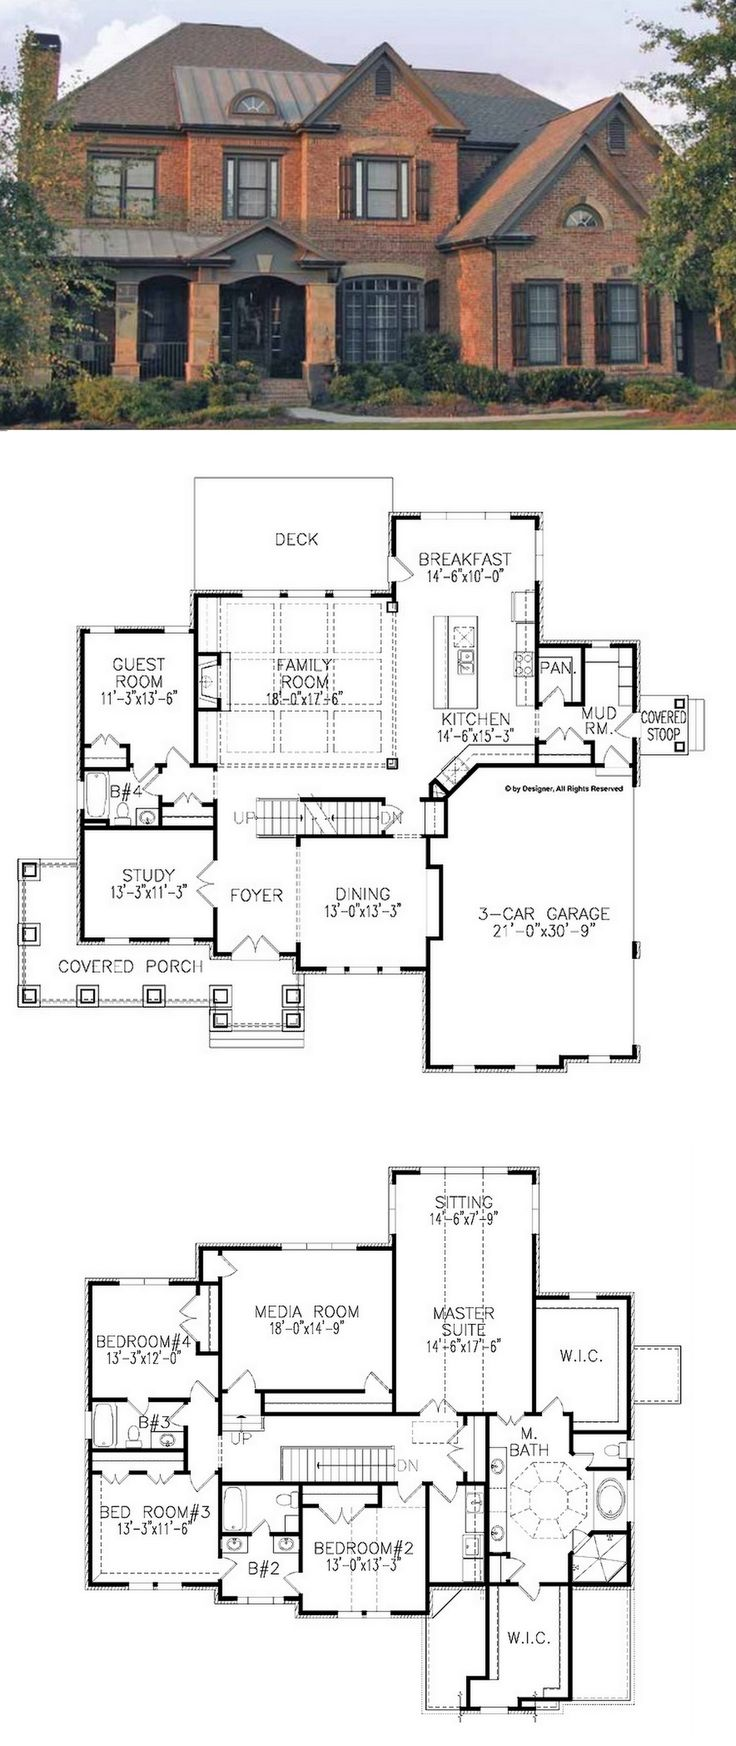 1000+ ideas about Floor Plans on Pinterest  House plans, Floors ... - ^